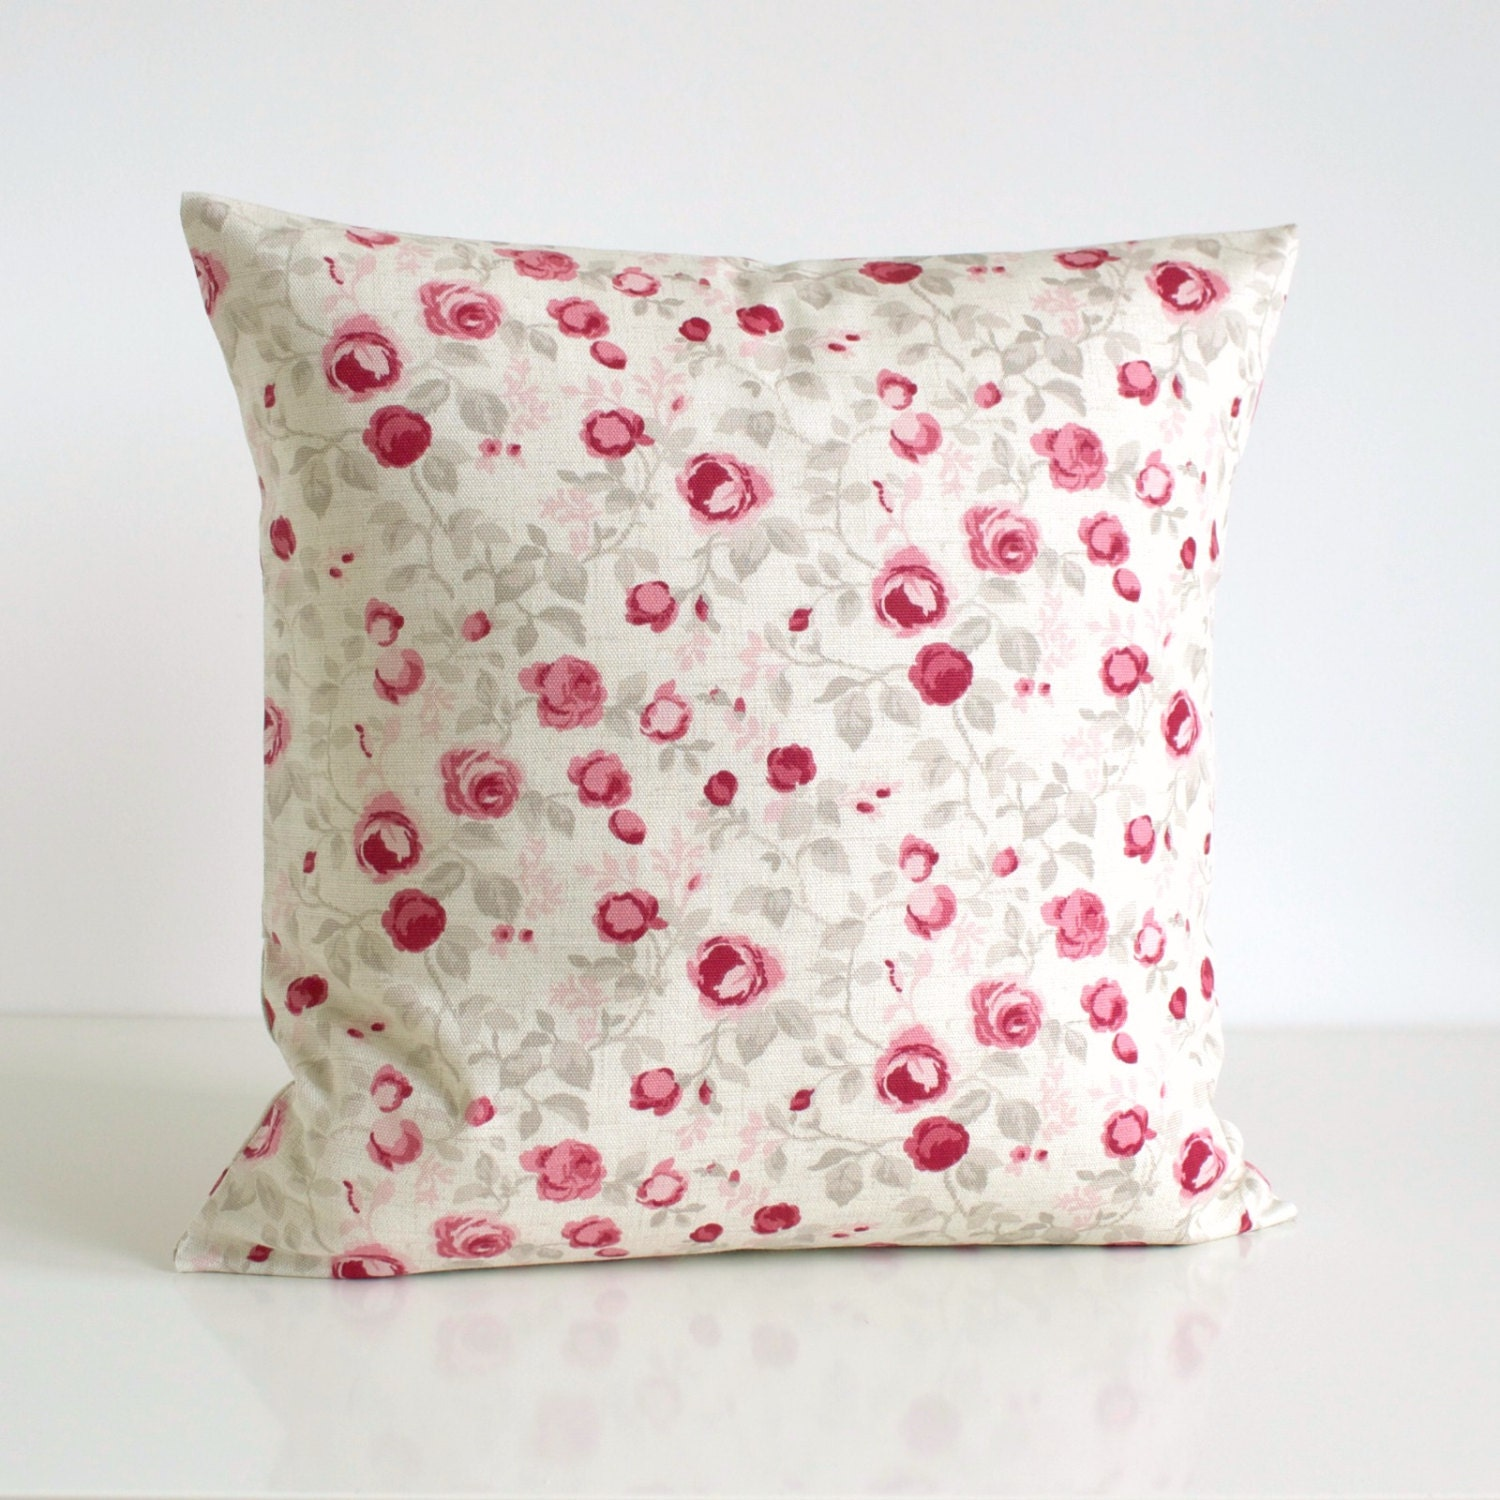 Shabby Chic Pillow Images : Decorative Pillow Cover Shabby Chic Cushion Cover by CoupleHome